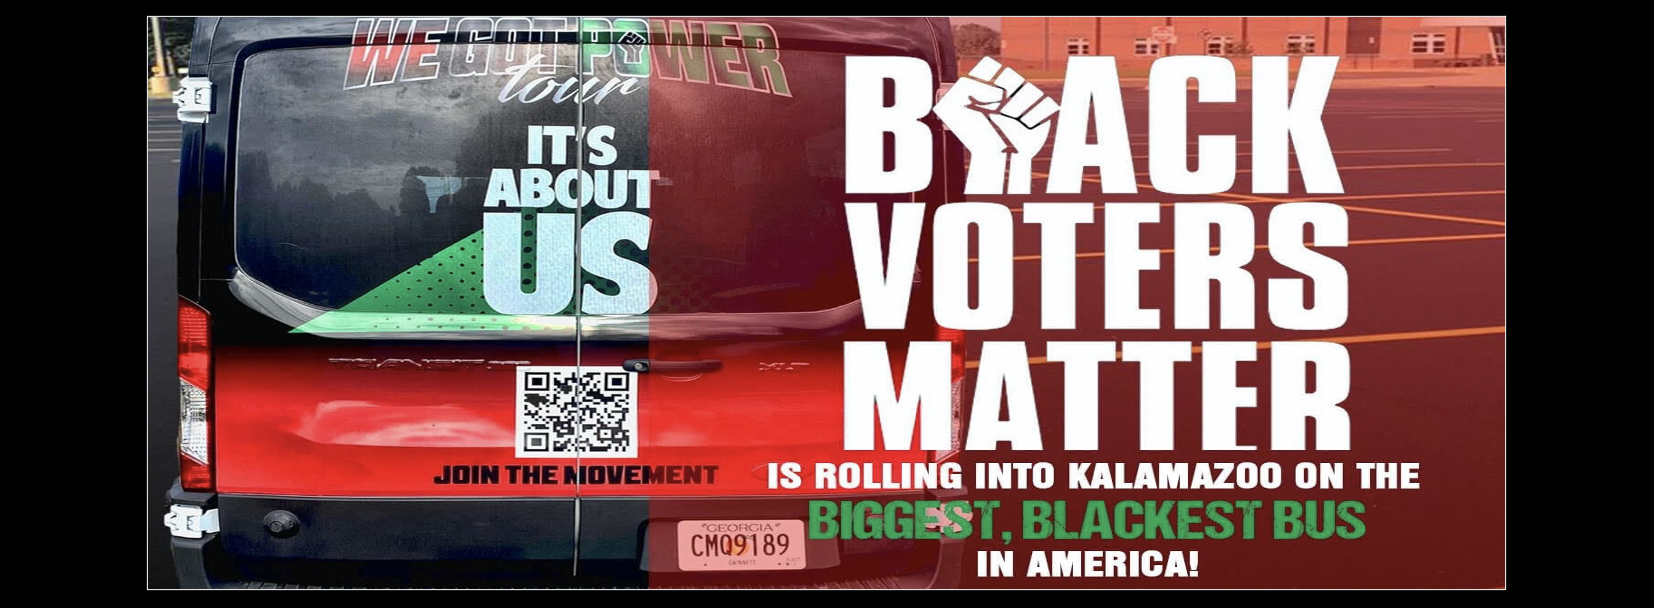 Black Voters Matter mobilizes voters in Kalamazoo through local events organized with Mothers of Hope